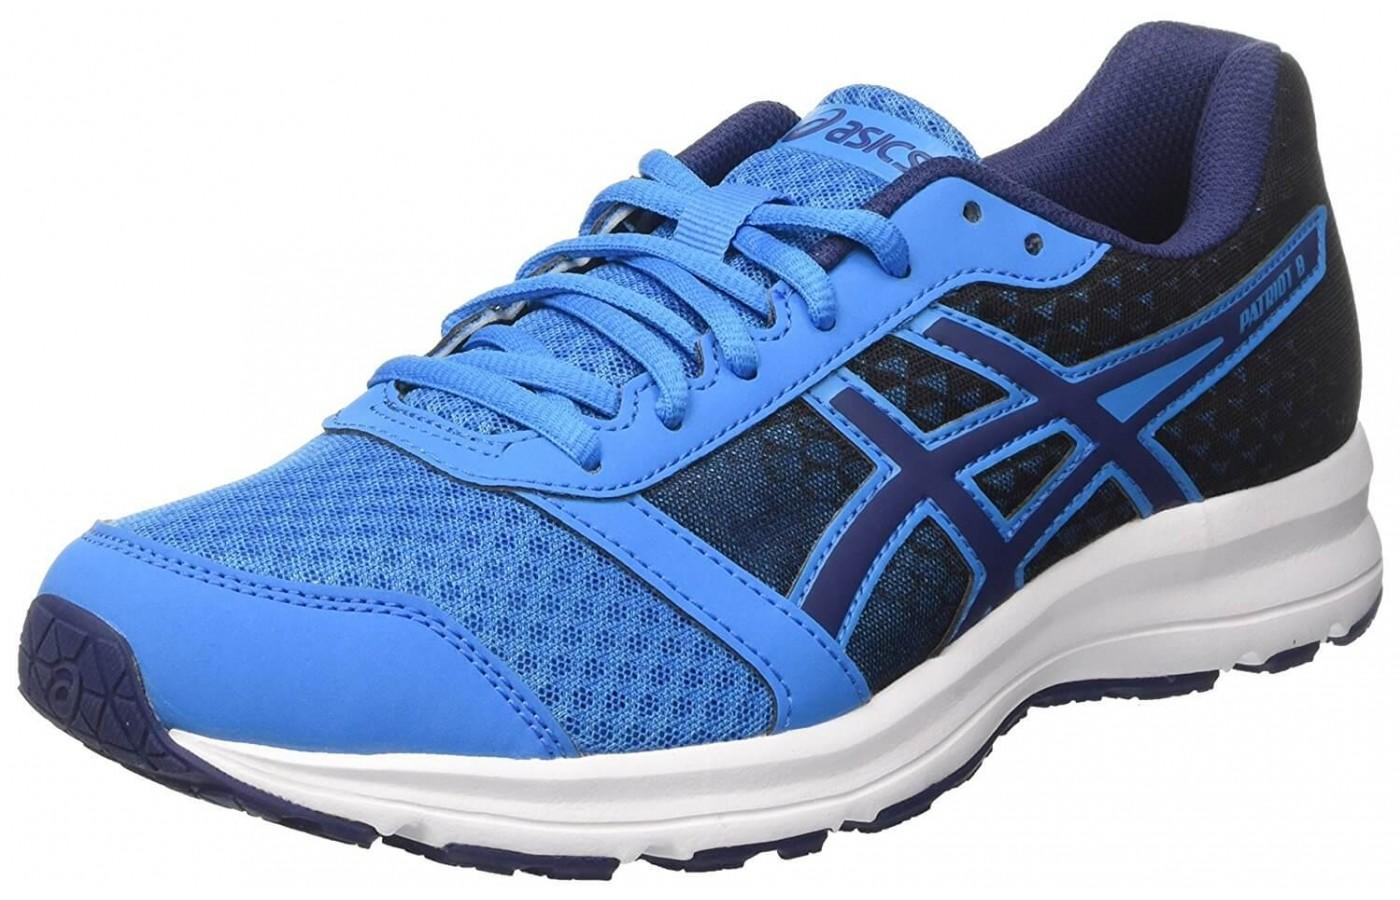 here is a look at the ASICS Patriot 8